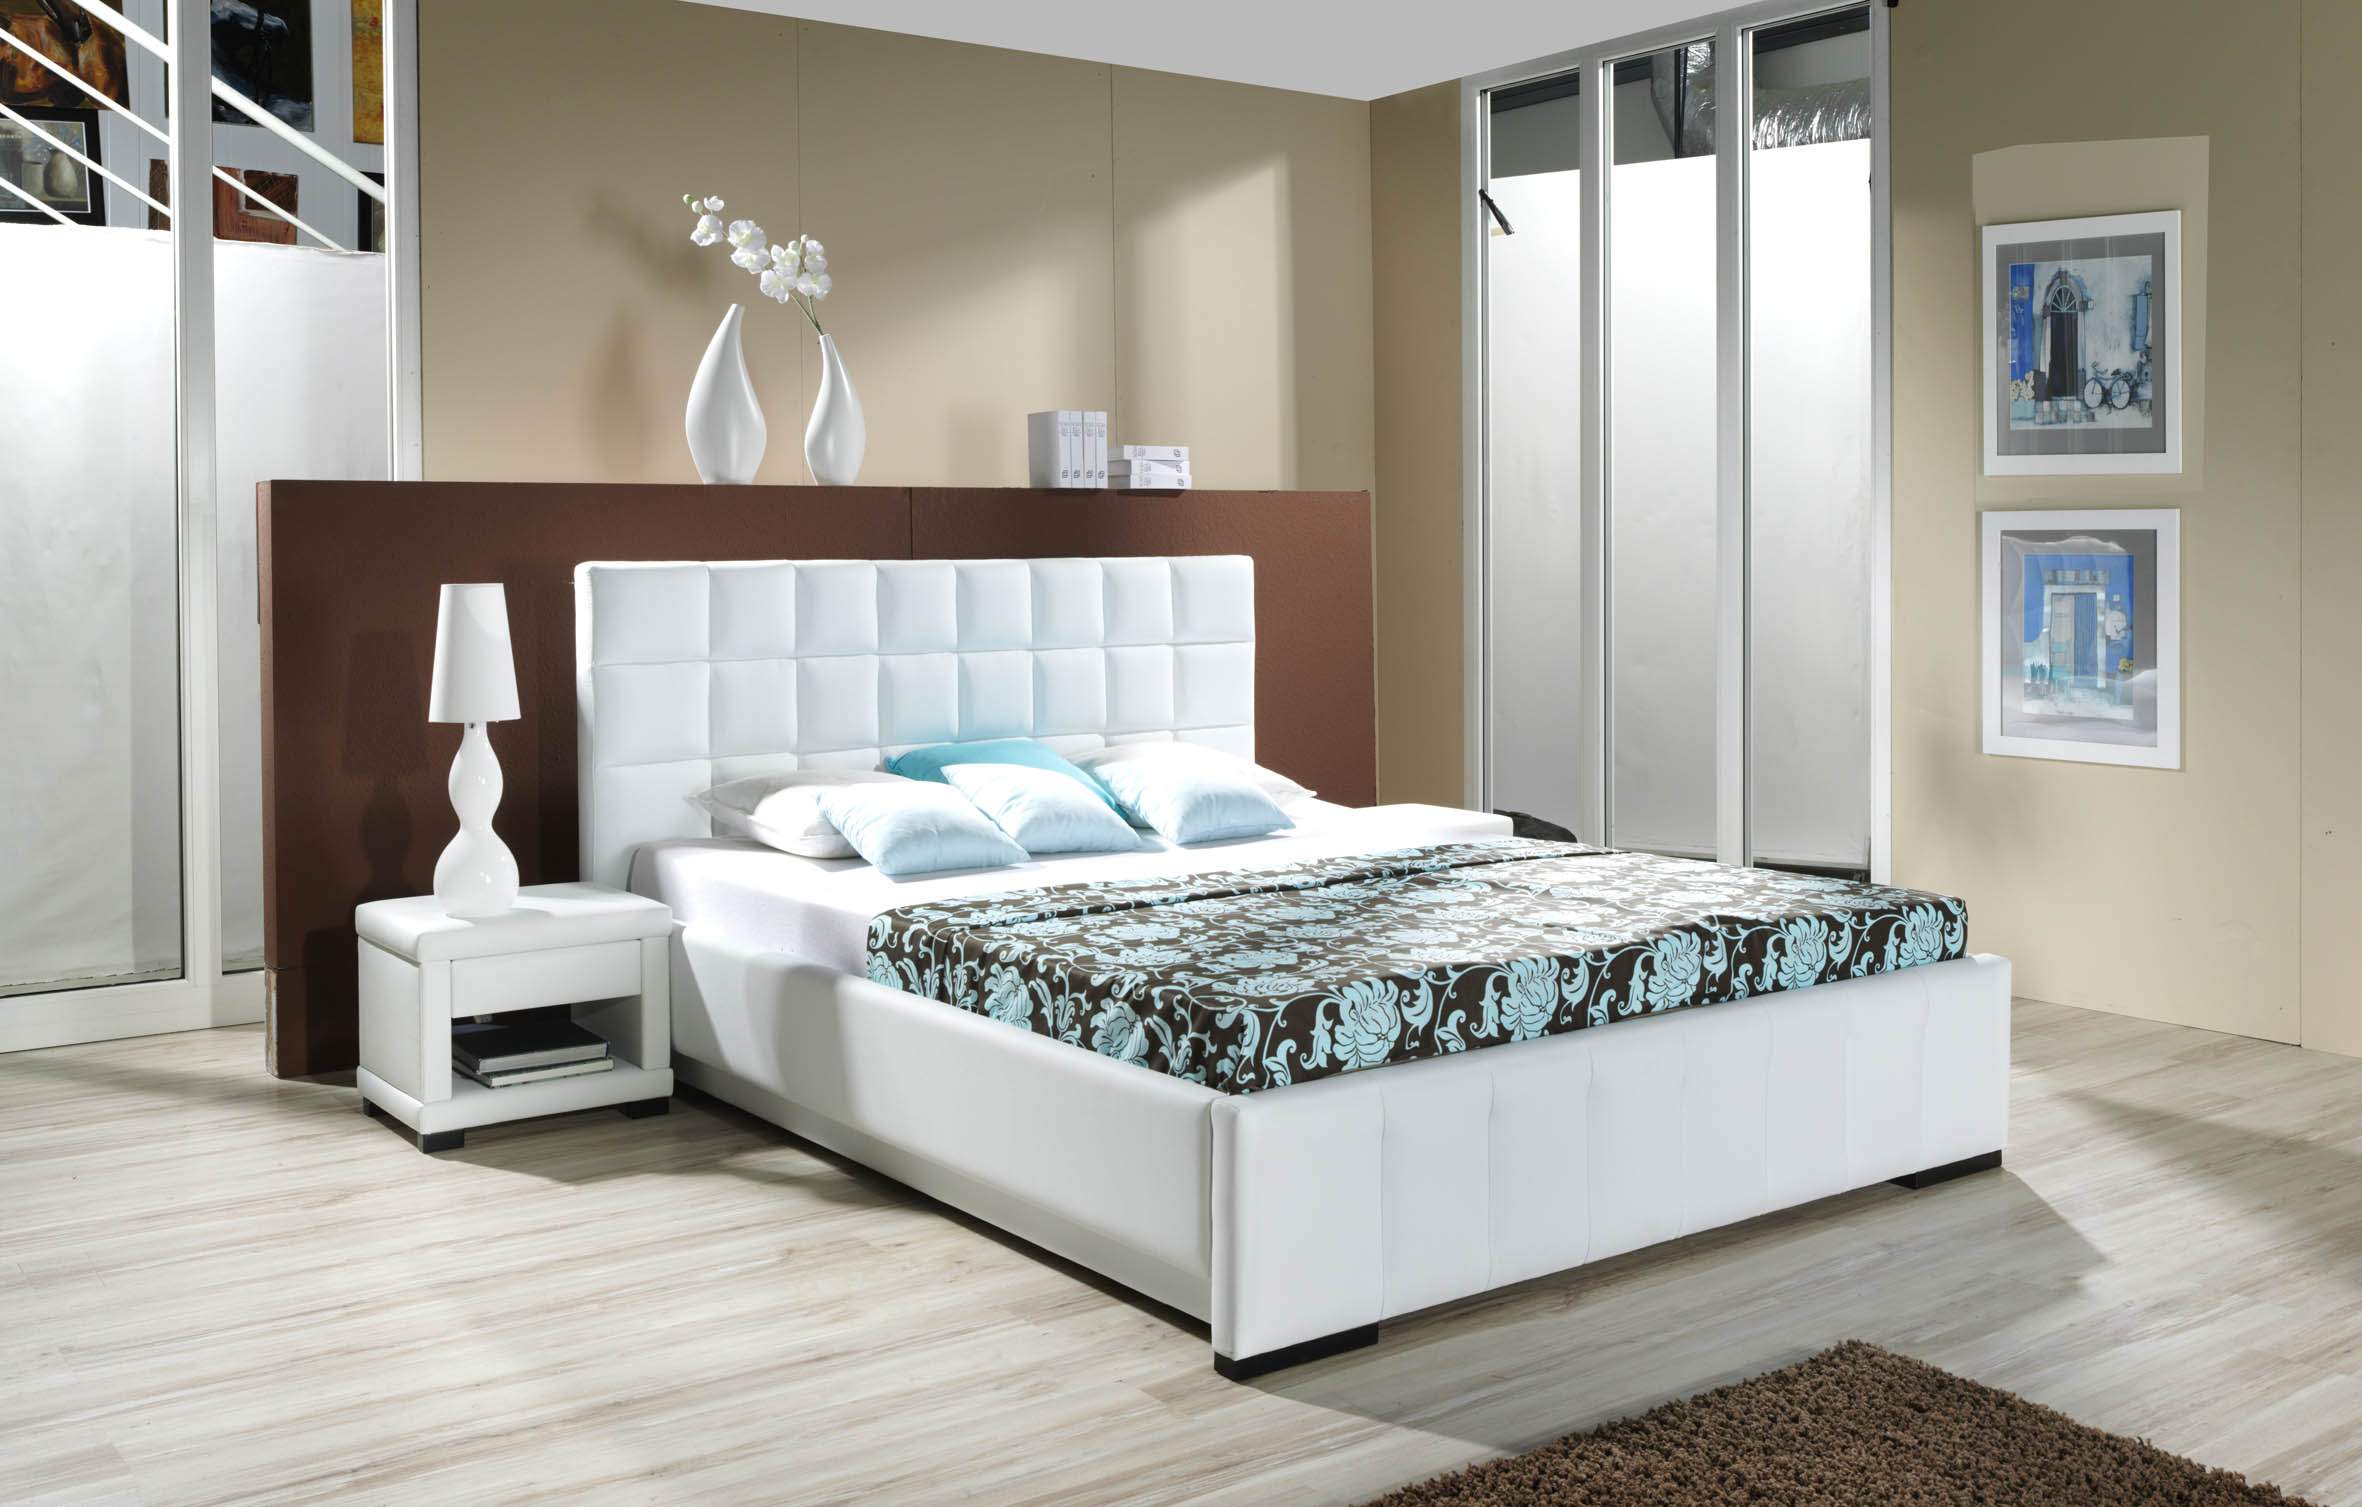 25 Bedroom Furniture Design Ideas  The WoW Style